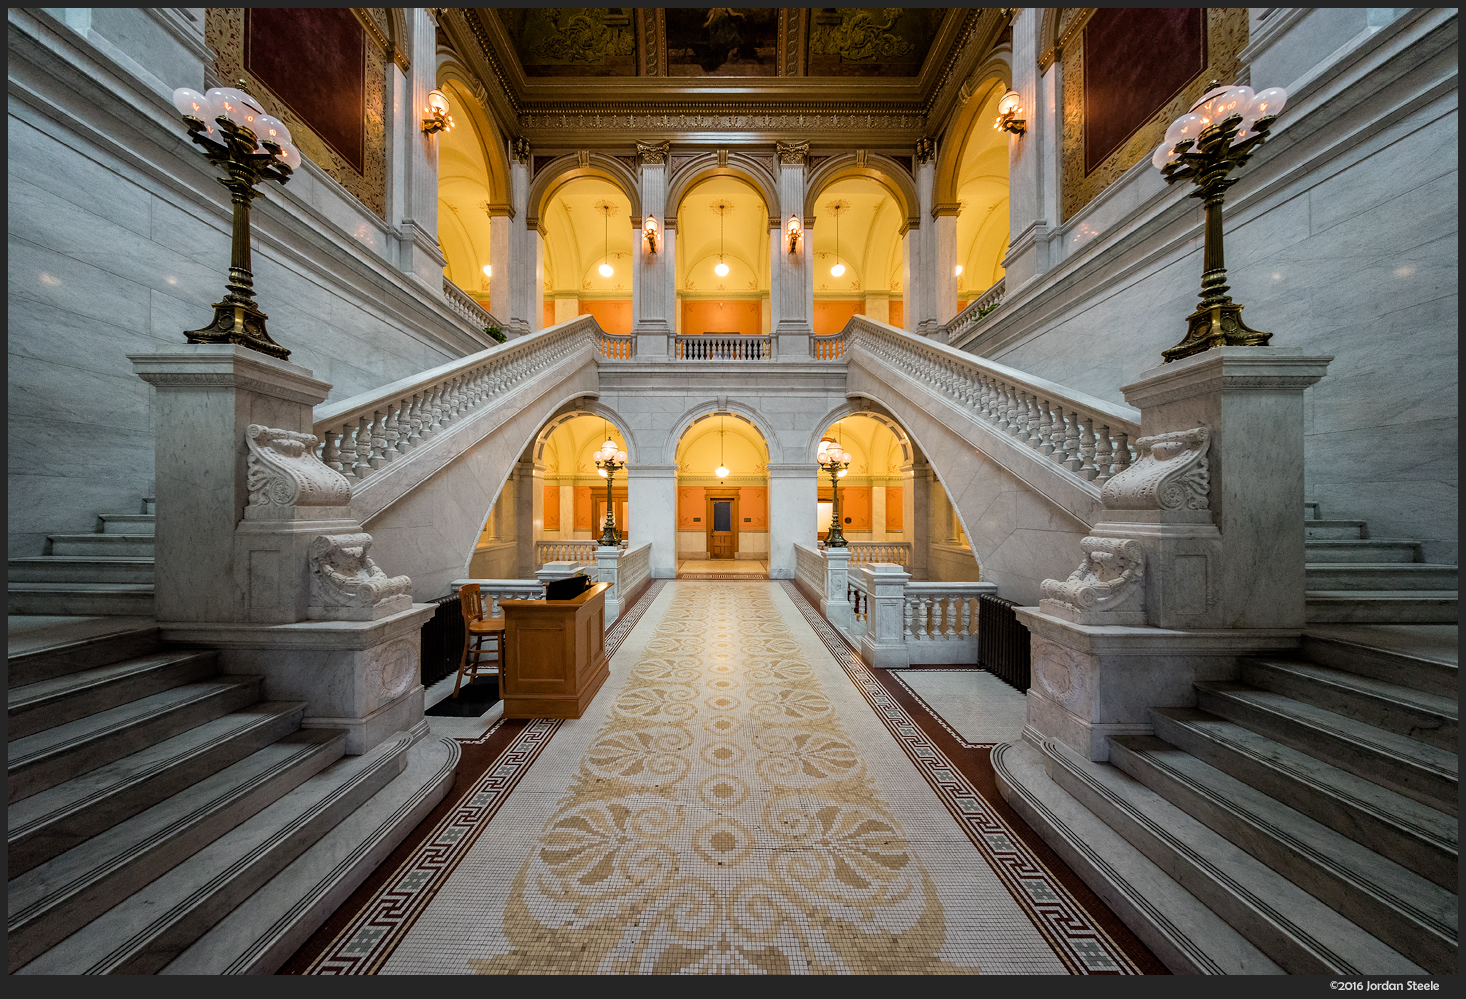 Ohio Statehouse Foyer - Sony A7 II with Voigtländer 10mm f/5.6 @ f/5.6